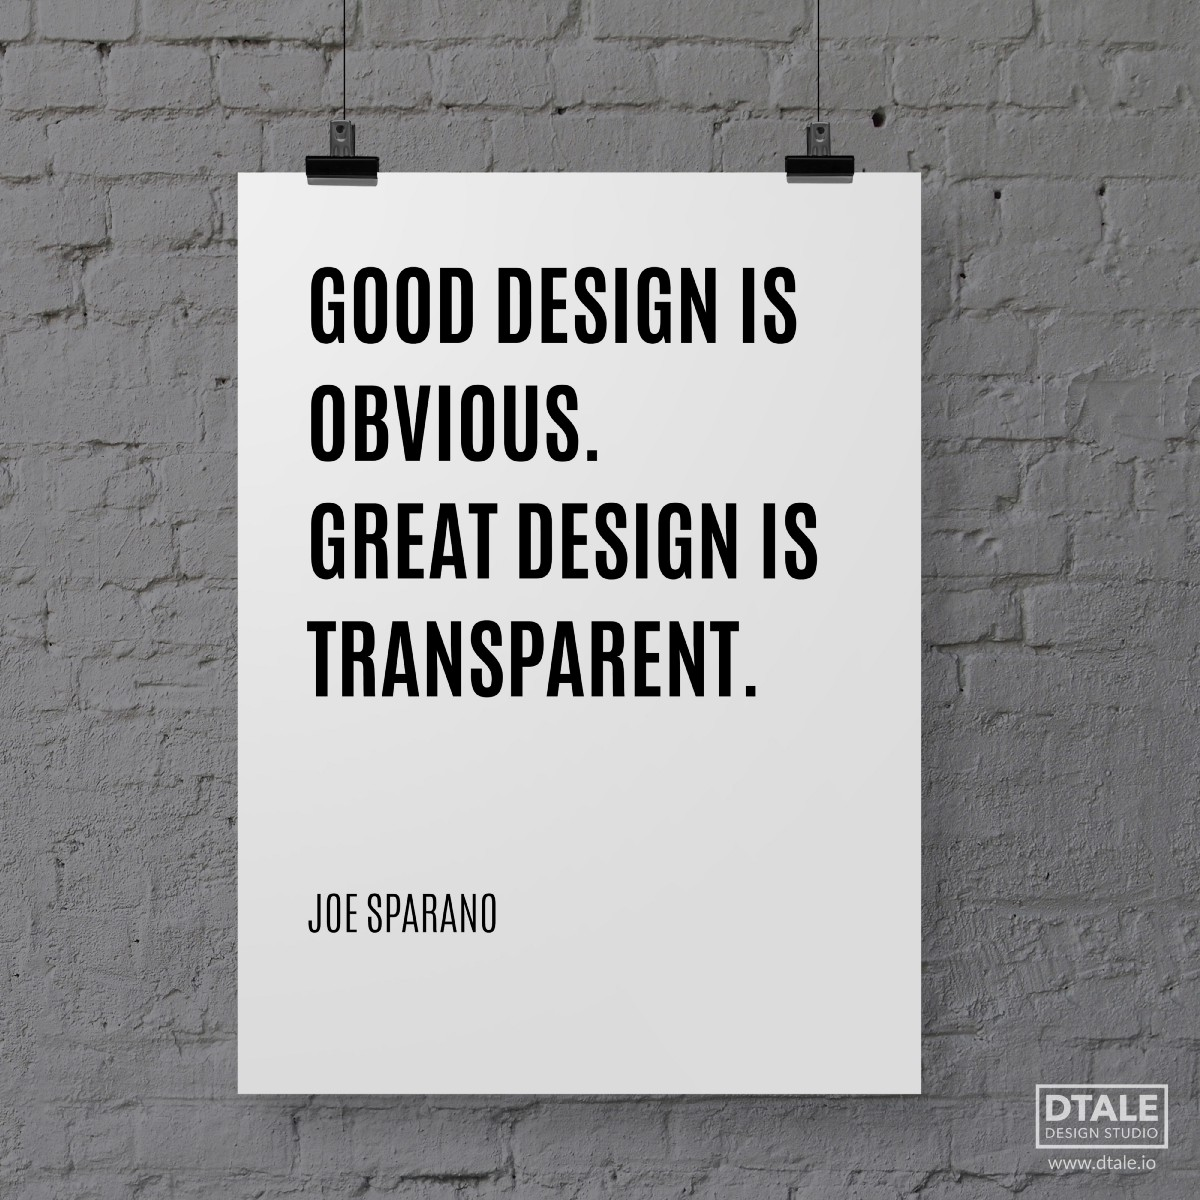 Good Design Quotes: 20 Inspiring Quotes Every Designer Should Know